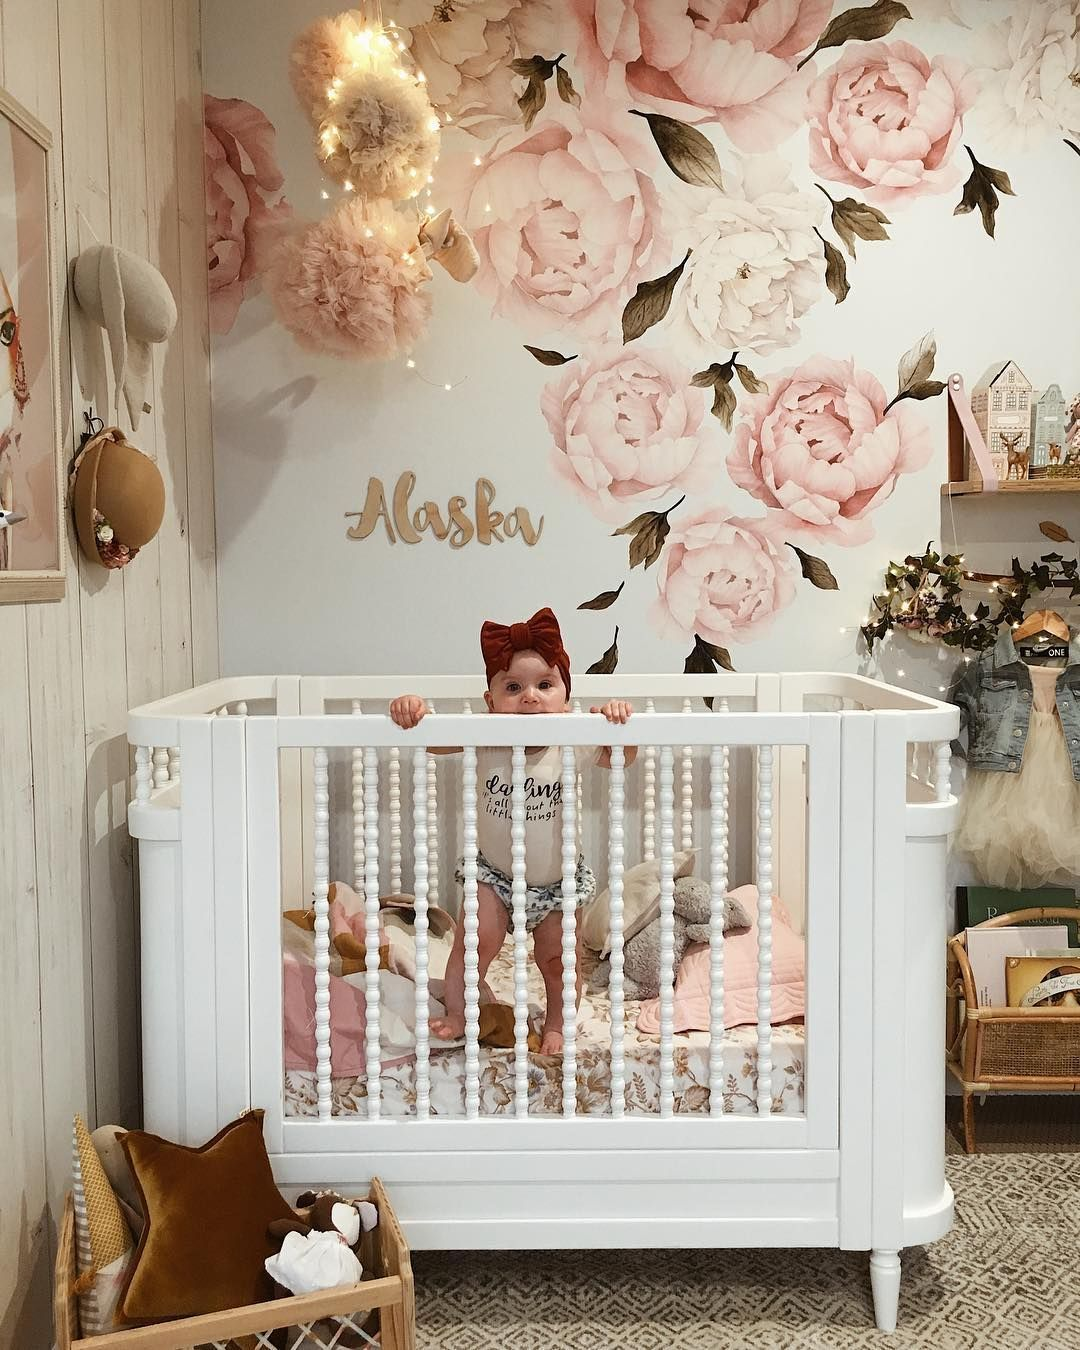 27 Cute Baby Room Ideas Nursery Decor For Boy Girl And Unisex Baby Girl Nursery Room Baby Girl Room Cozy Baby Room